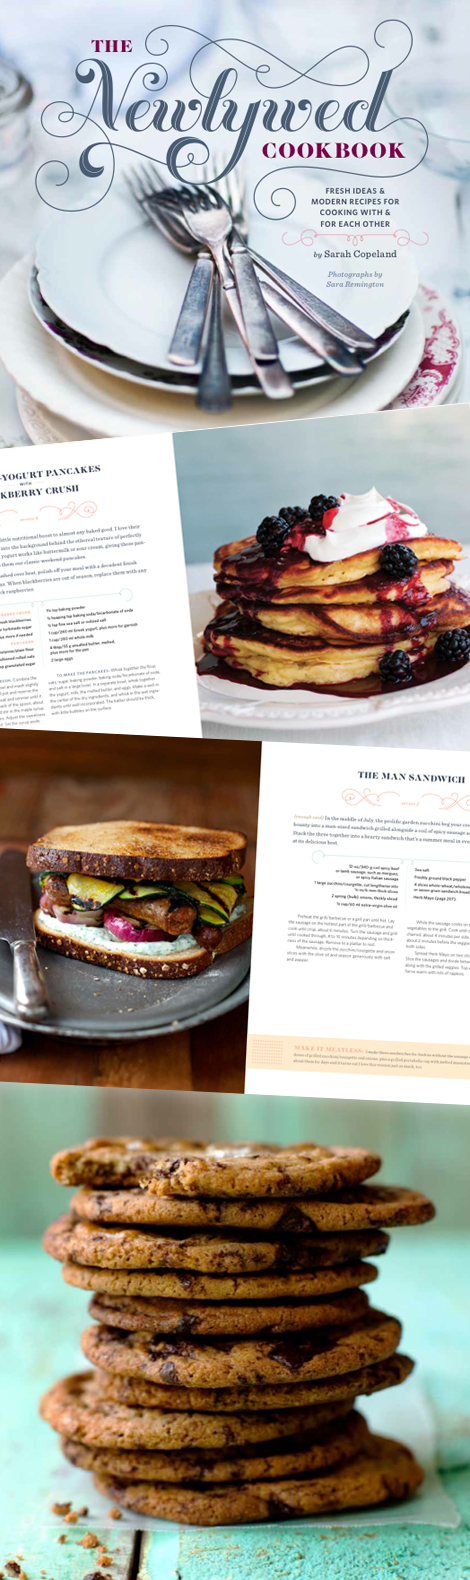 The-newlywed-cookbook-sarah-copeland